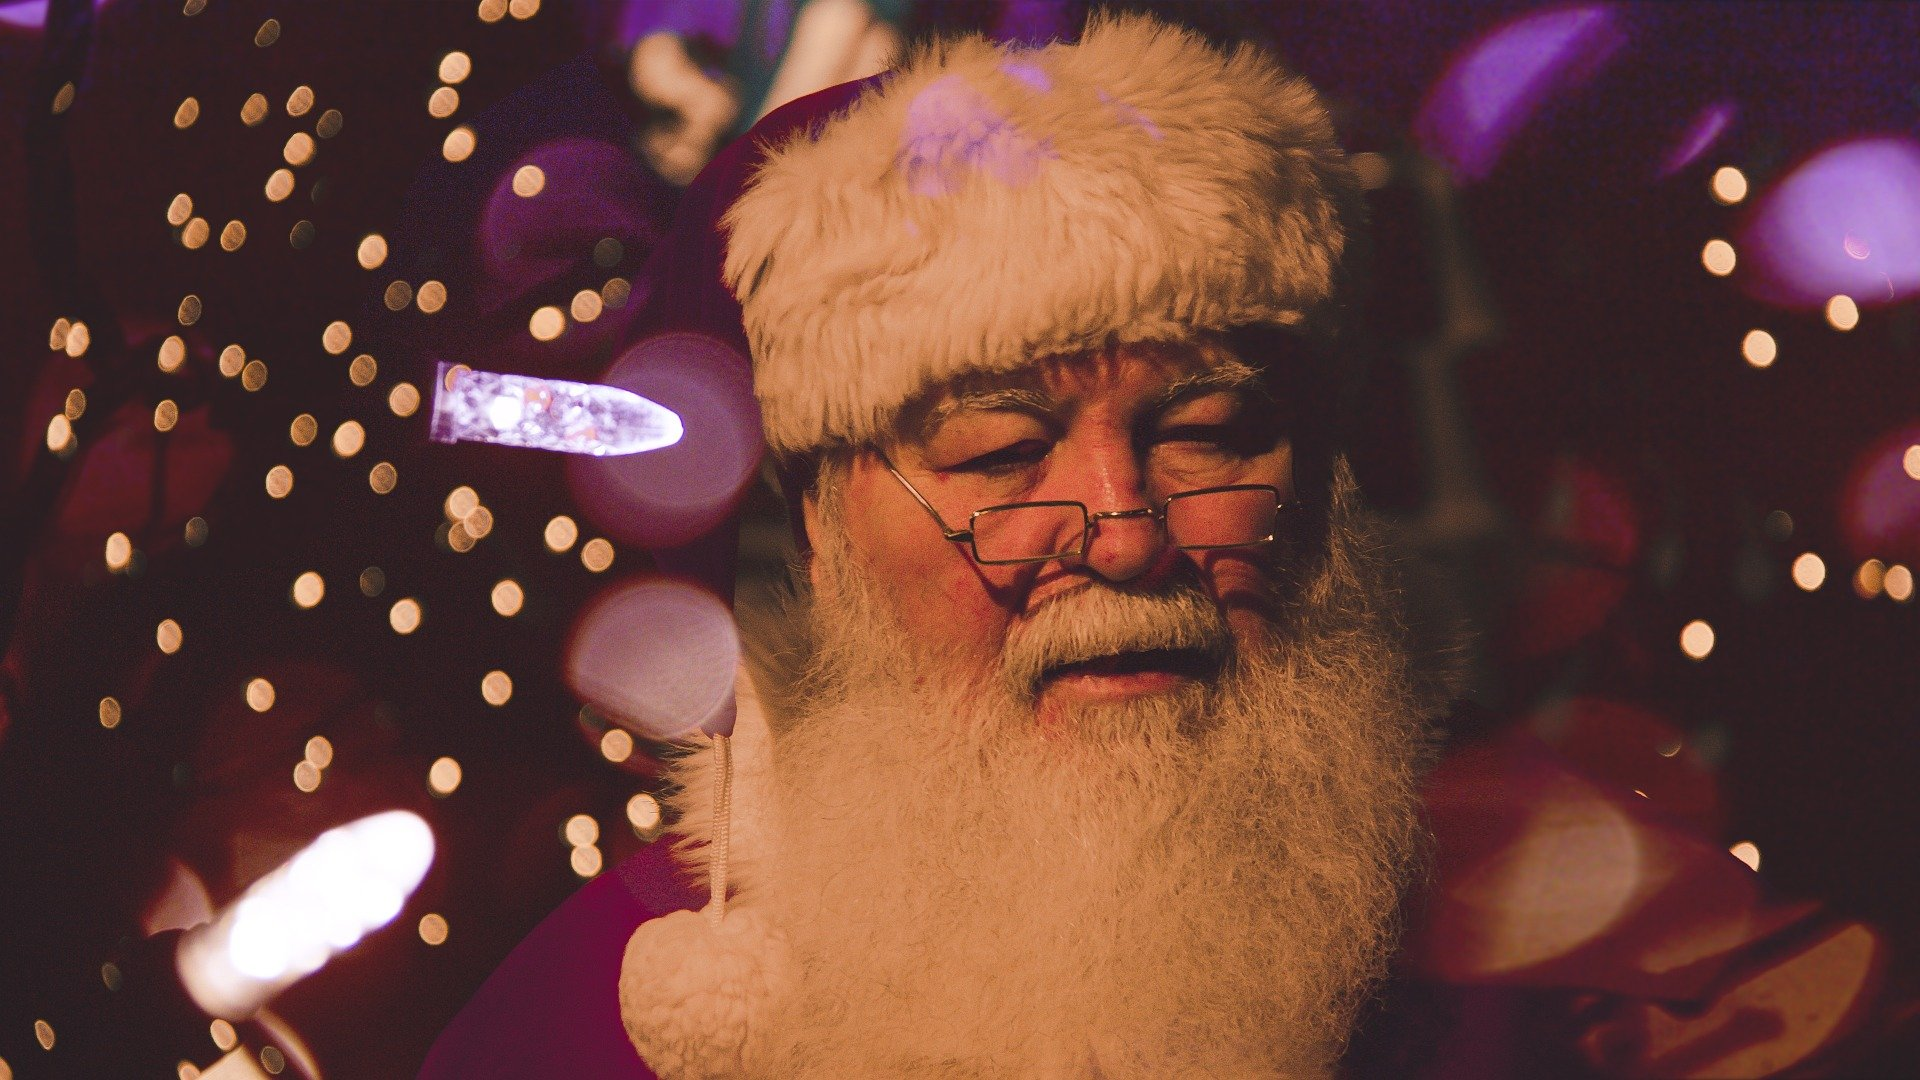 My Top Five Must Watch Christmas Movies